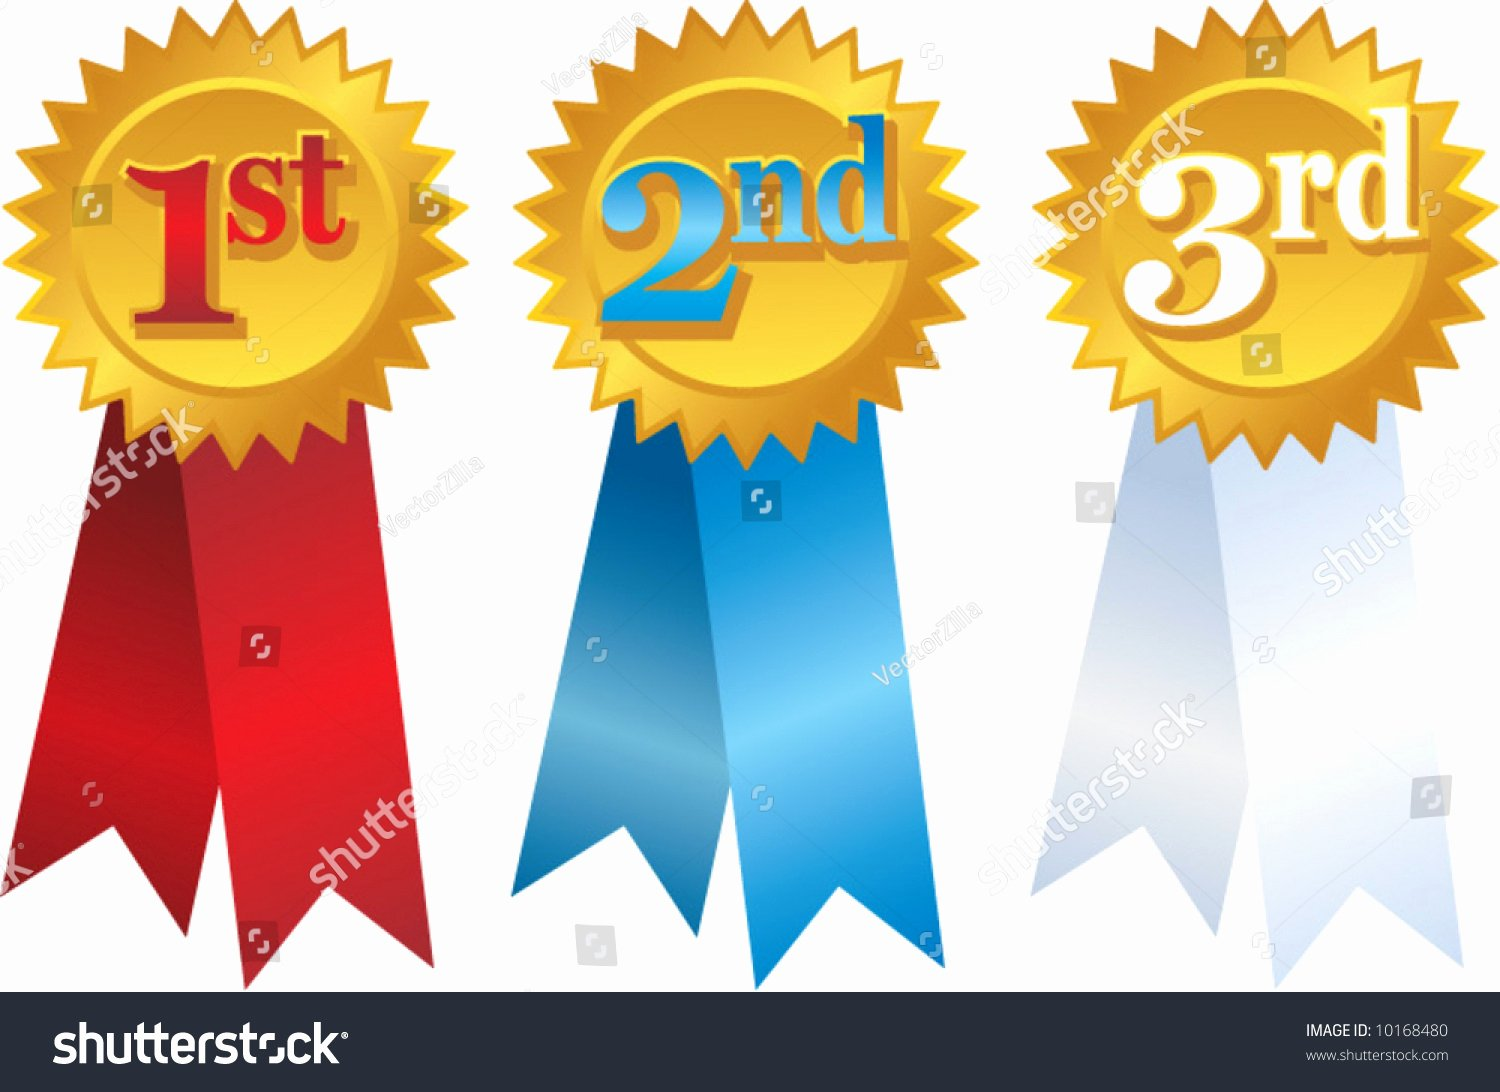 Printable 1st 2nd 3rd Place Ribbons Awesome Index Of Cdn 25 2015 914